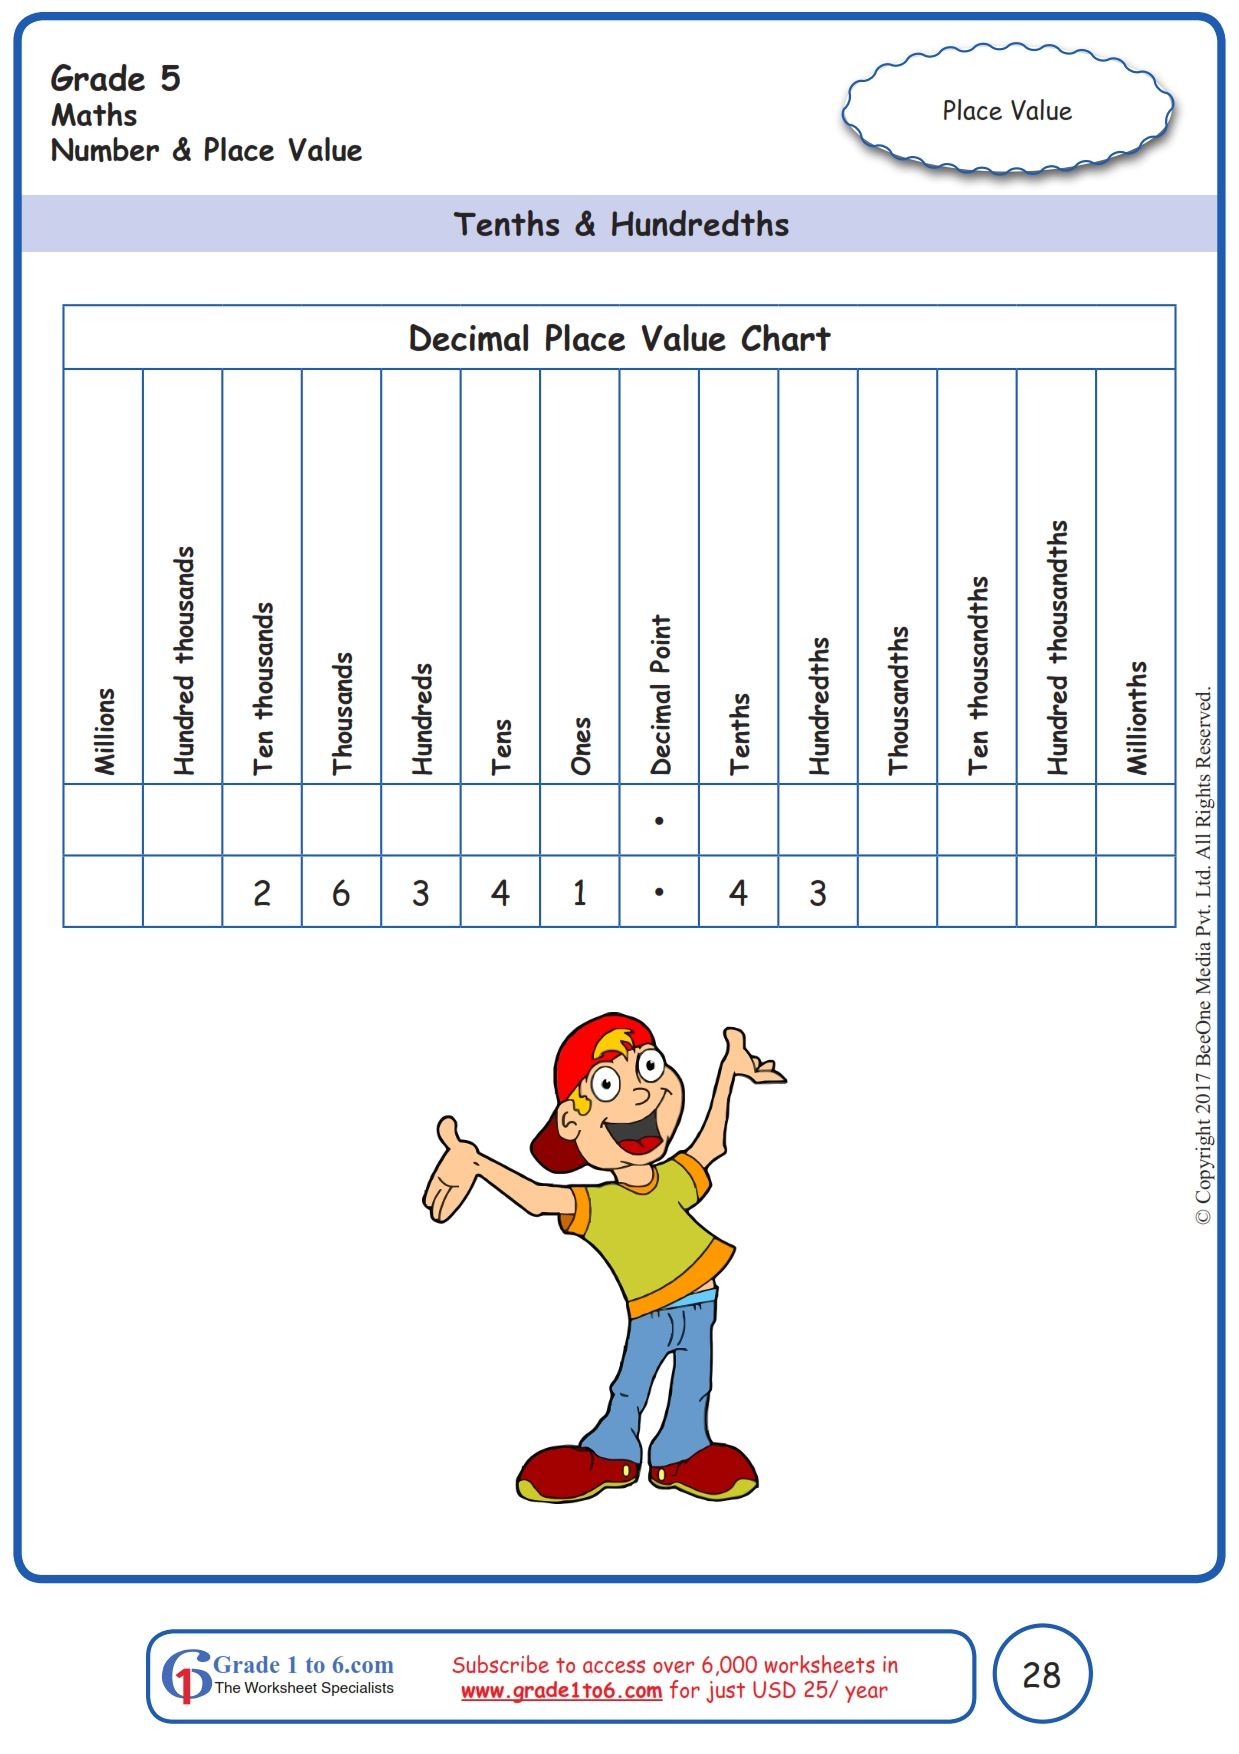 Worksheet Grade 5 Math Tenths Amp Hundredths In